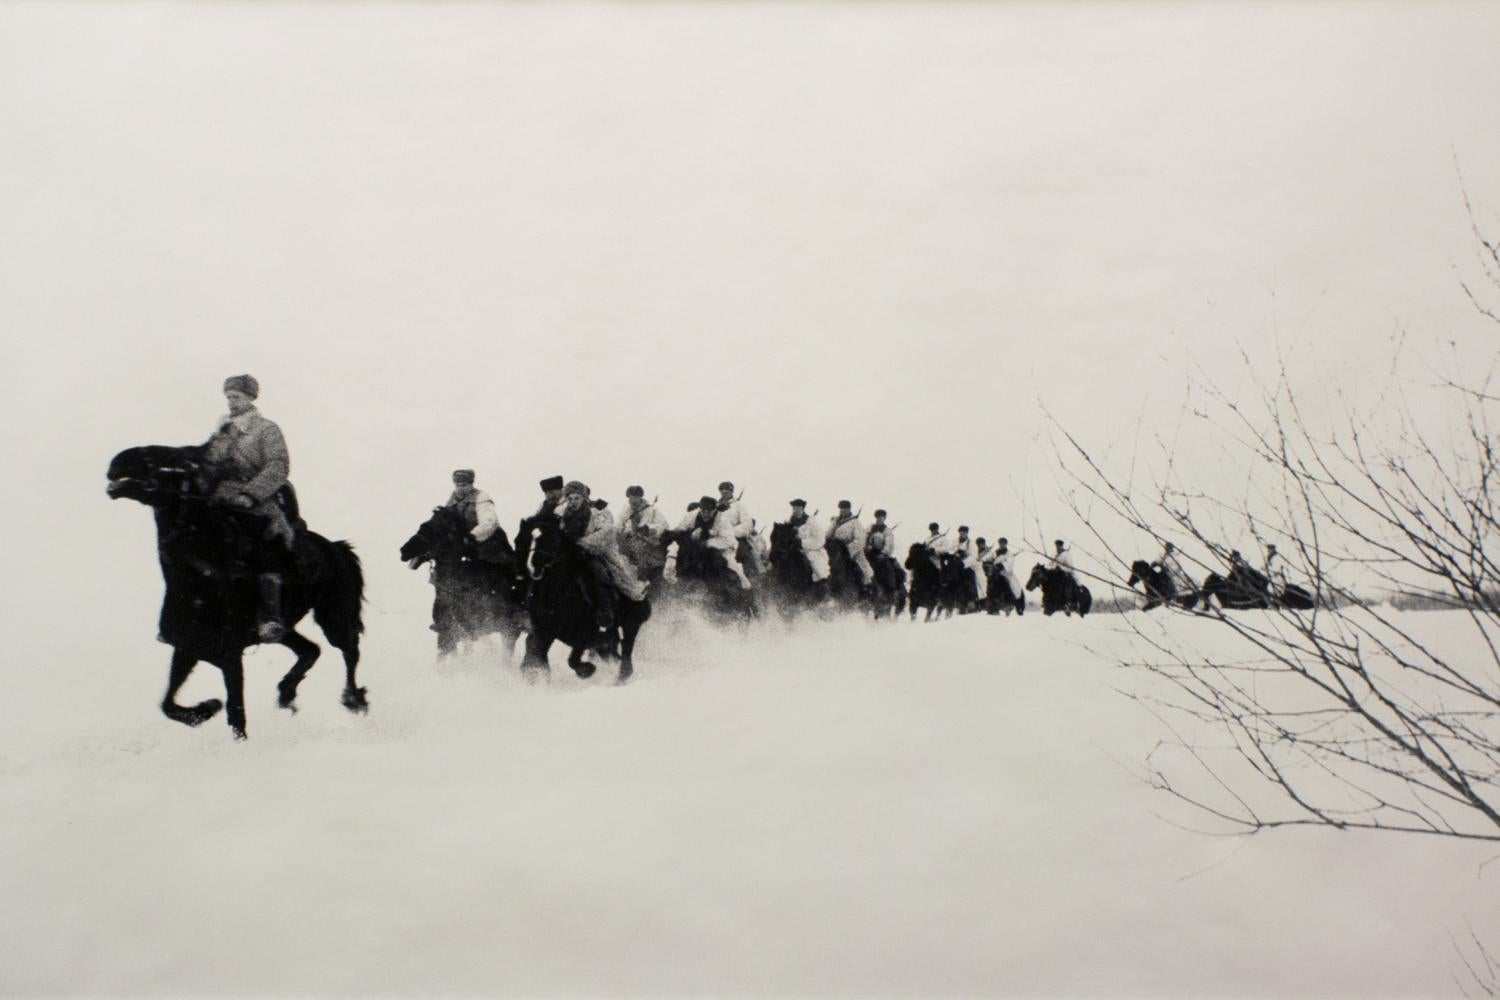 black and white photo of soldiers on horseback riding in the snow